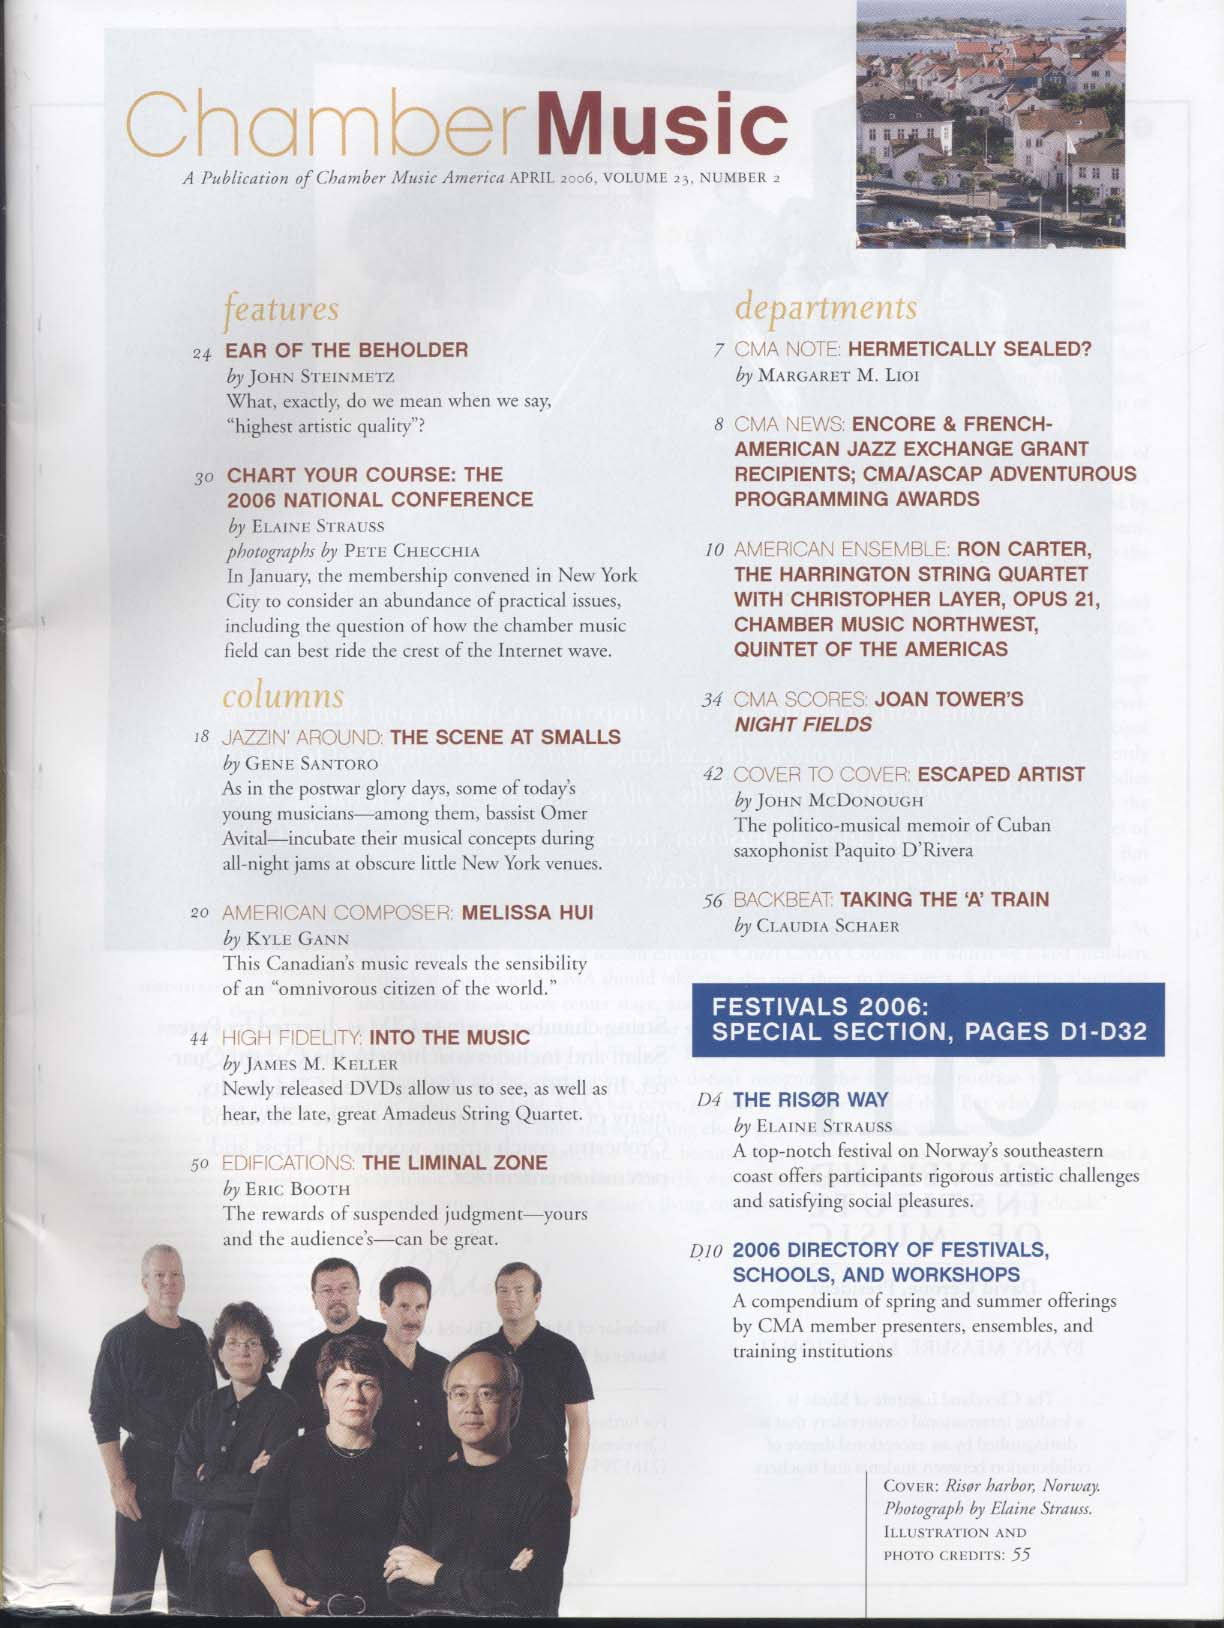 ChamberMusicAmerica Mar.2006 2.table of contents.jpg